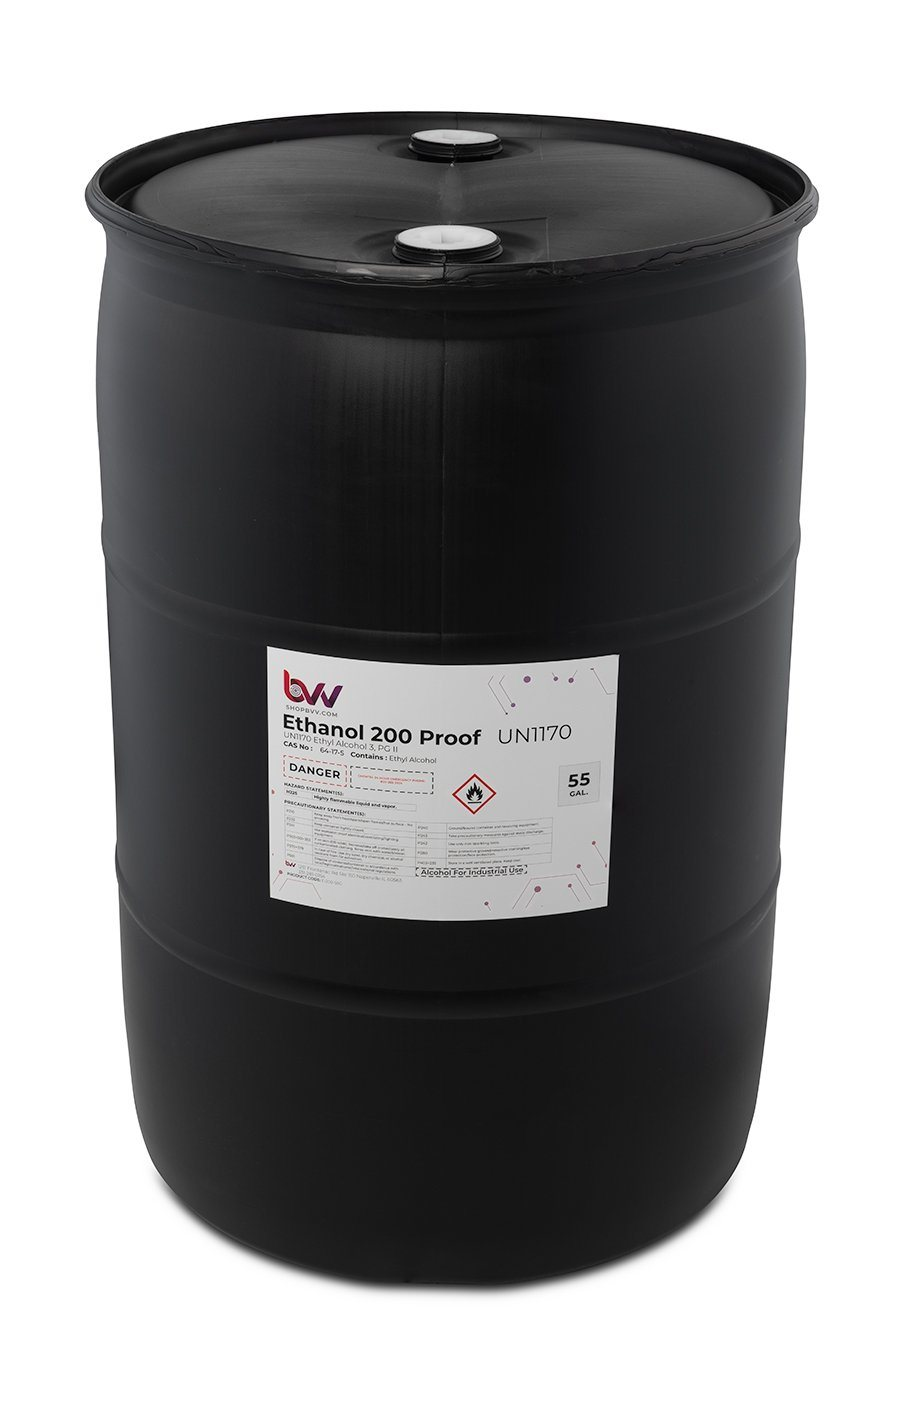 BVV™ Food & Lab Grade Ethanol 200 Proof - 99.97% - USP-NF, Kosher - Excise Tax Included Shop All Categories BVV 55 Gallon Drum